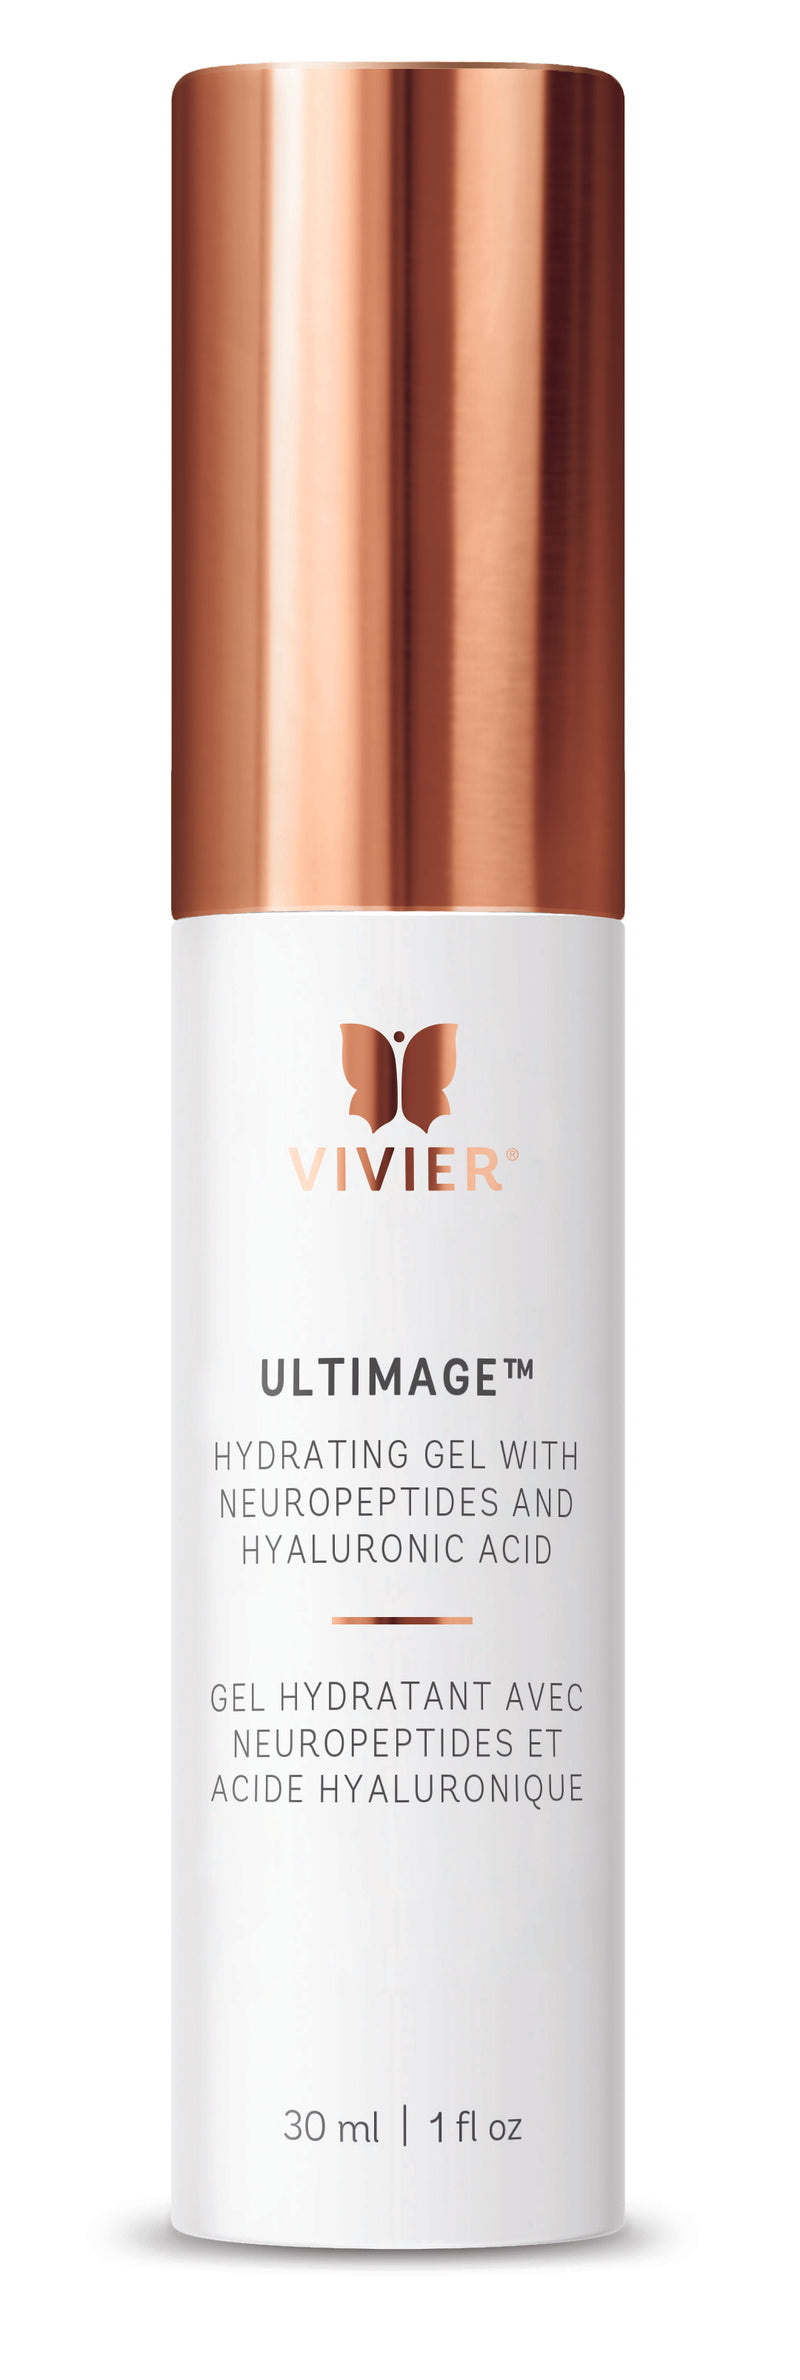 VIVIER Serum + Ultimage® = Gift With Purchase!